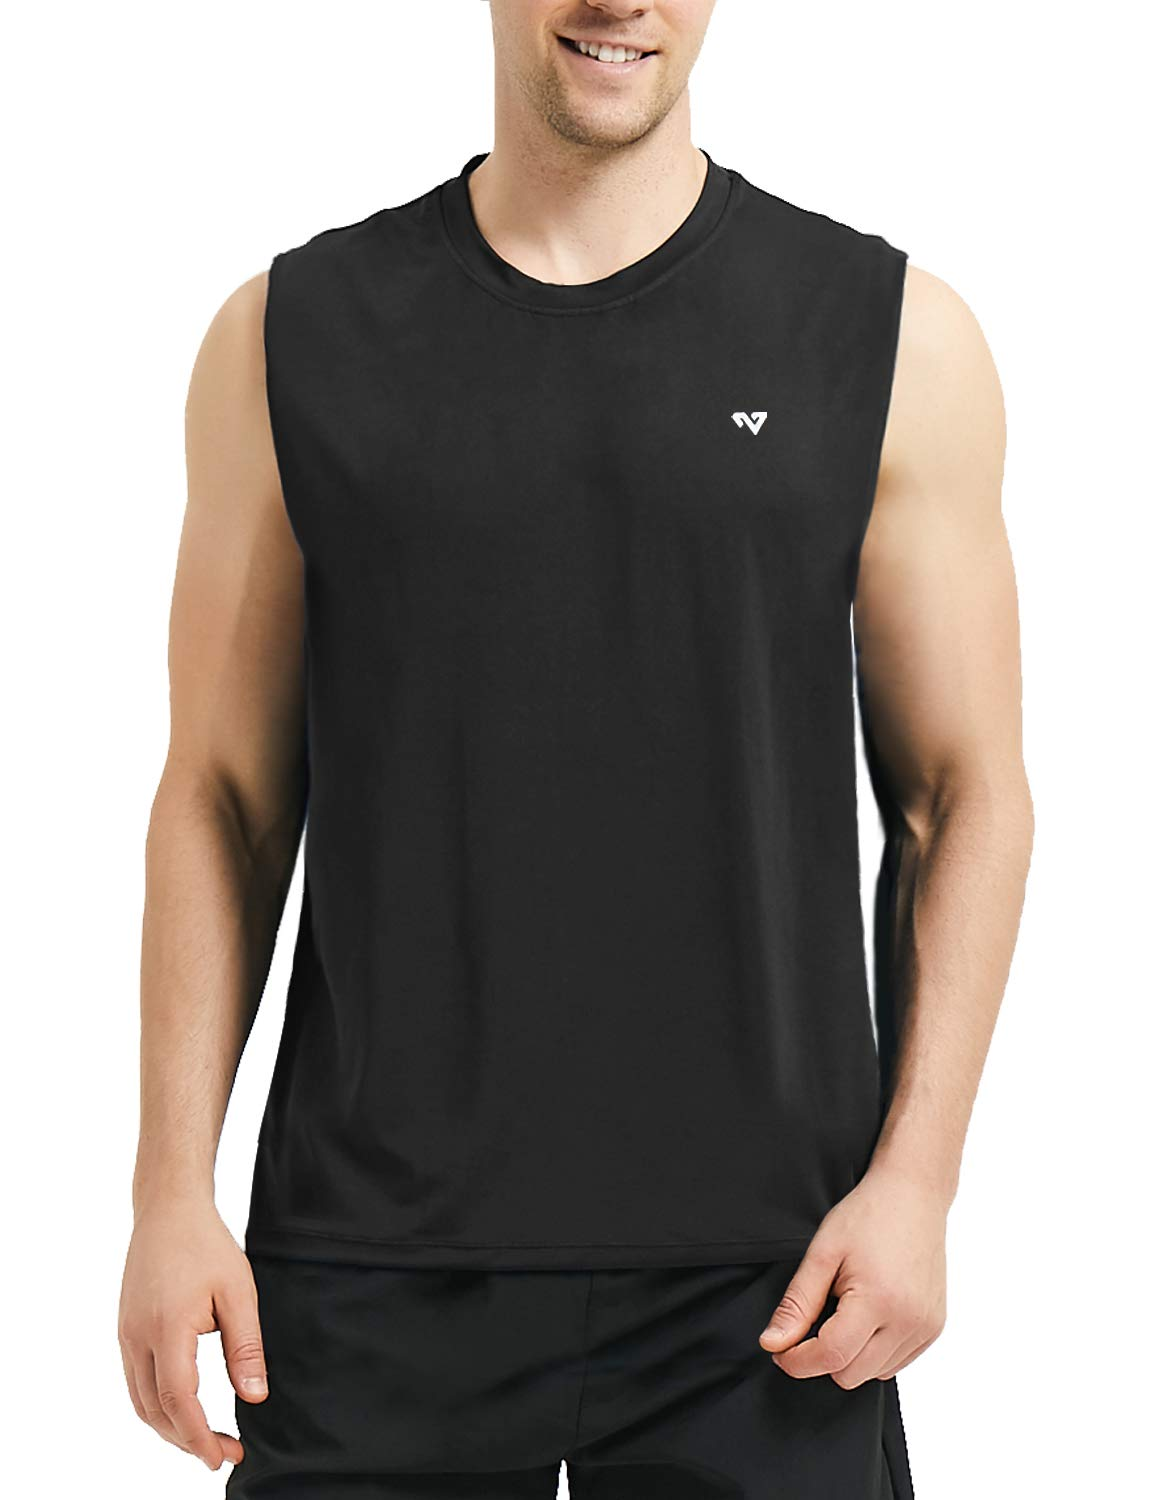 Roadbox Men's Performance Sleeveless Workout Muscle Bodybuilding Tank Tops Shirts(Black 3X-Large) by Roadbox